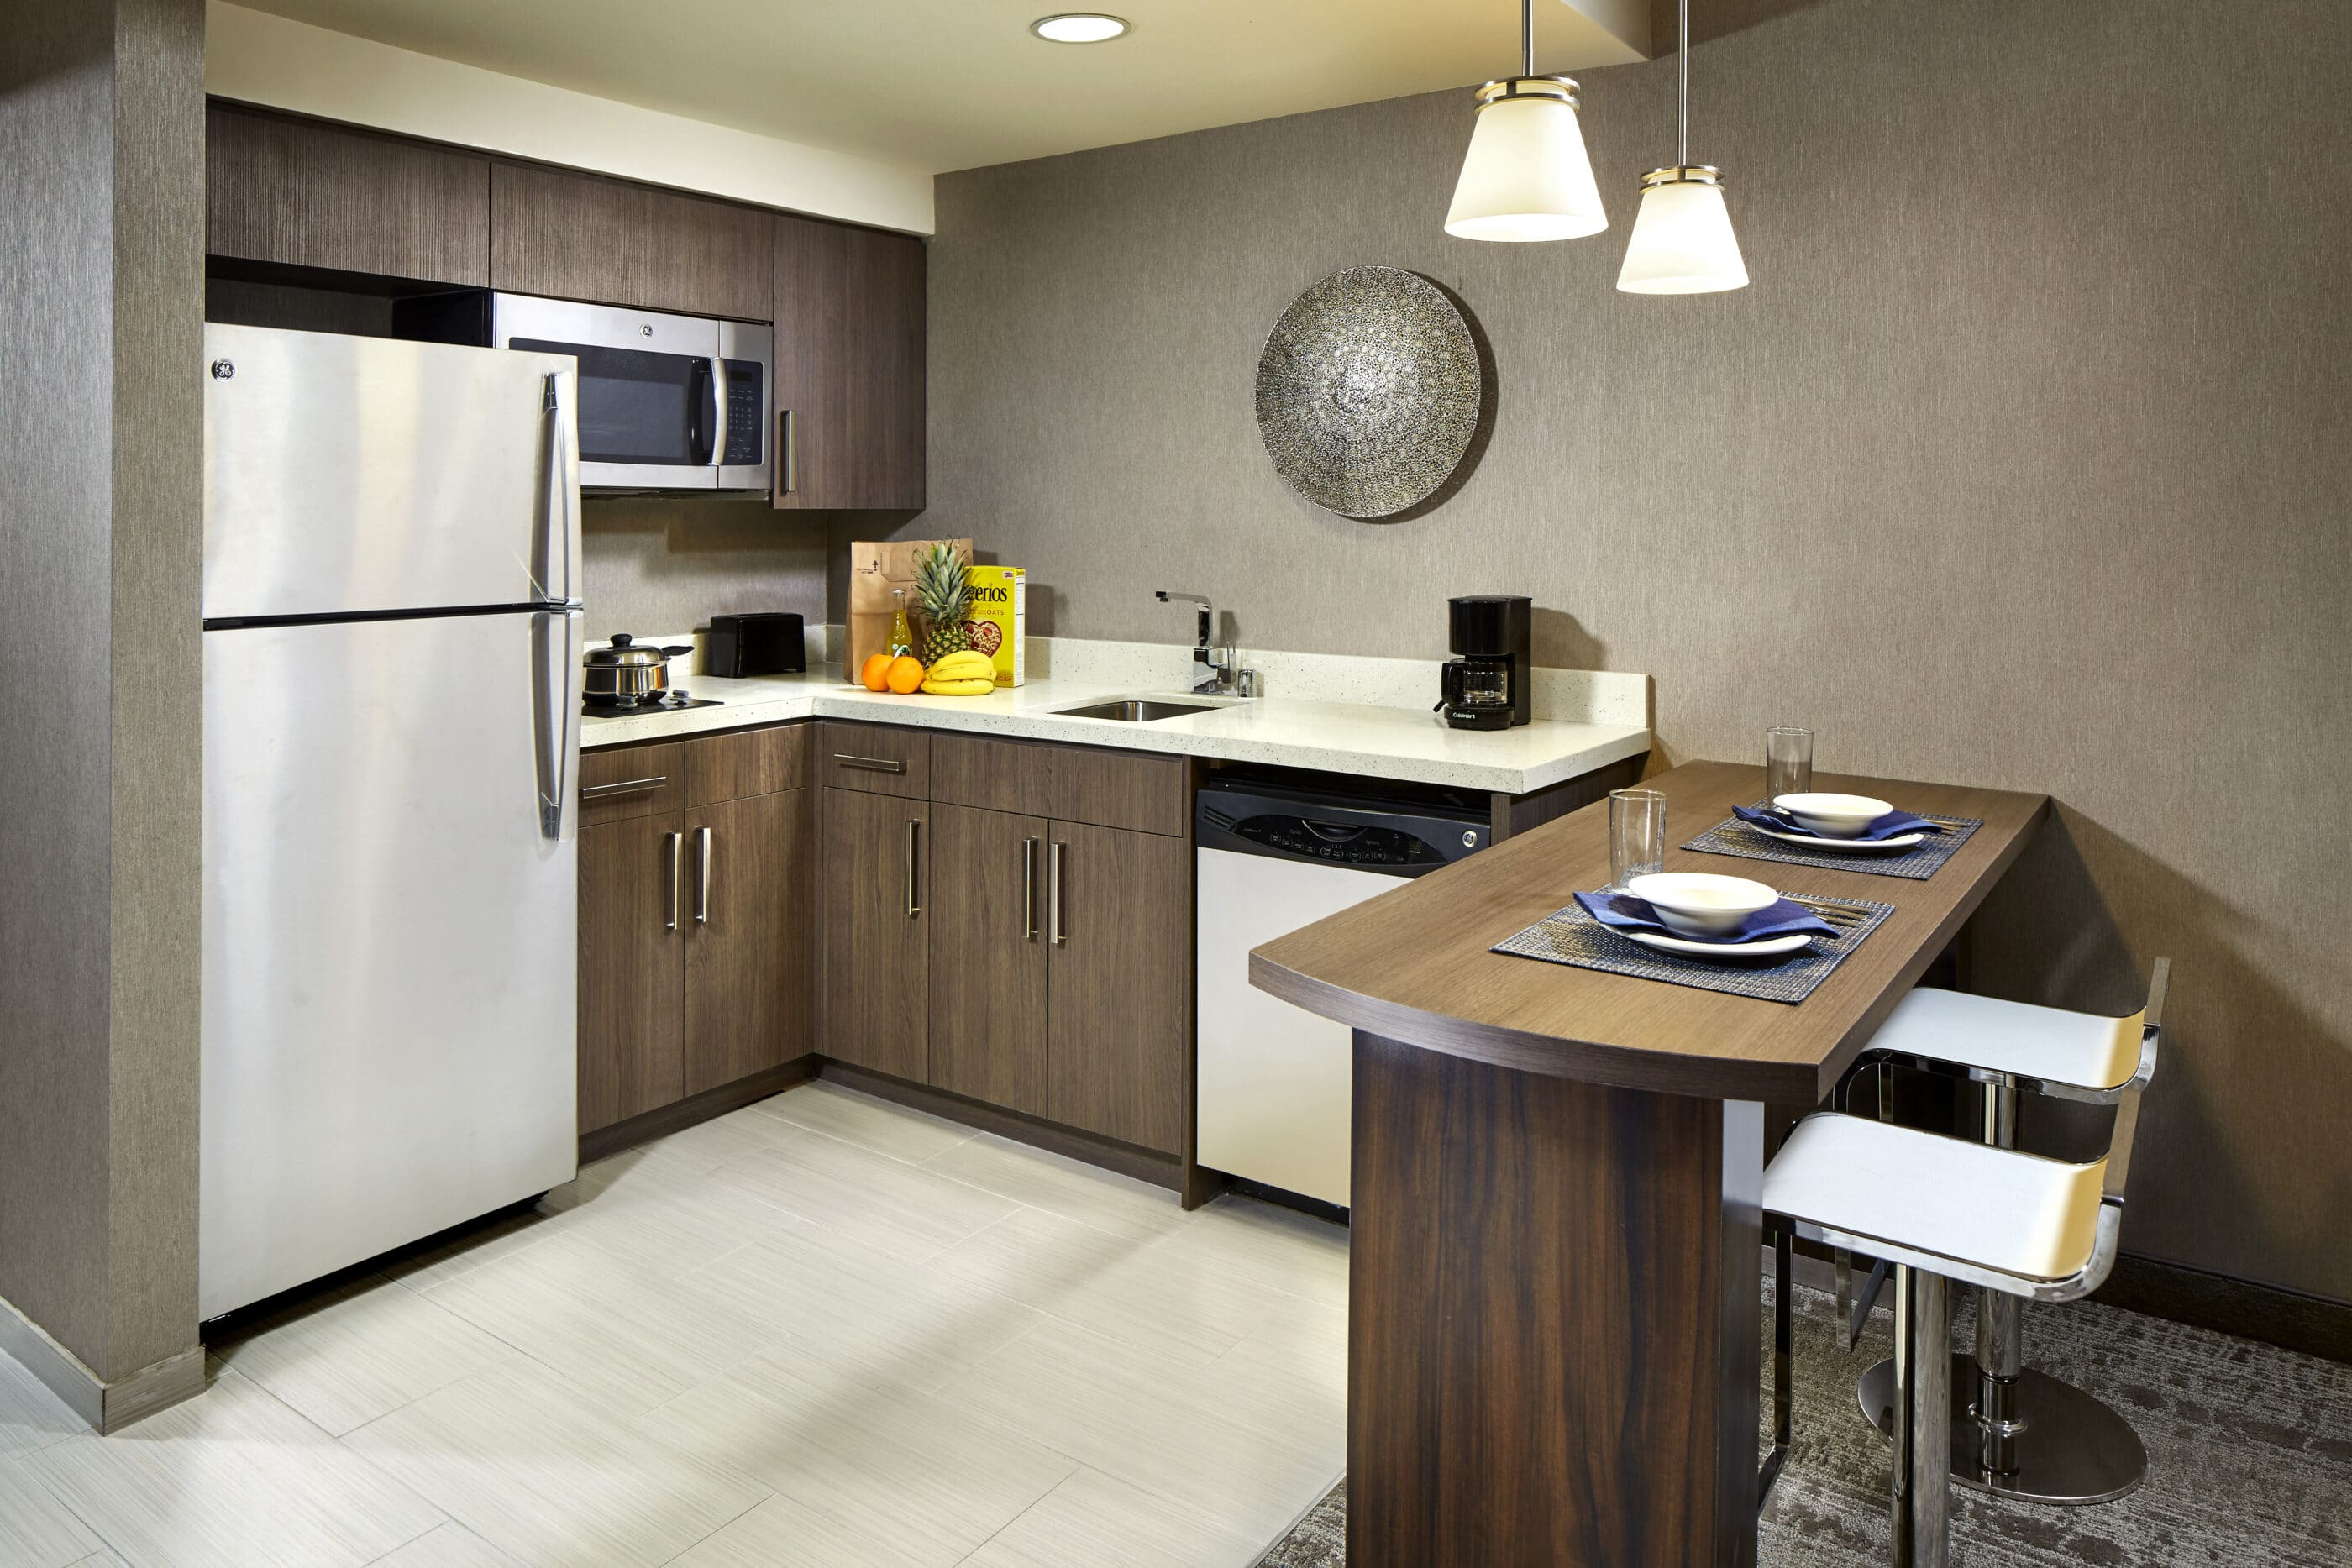 The full kitchen inside Homewood Suites by Hilton San Diego Downtown Bayside